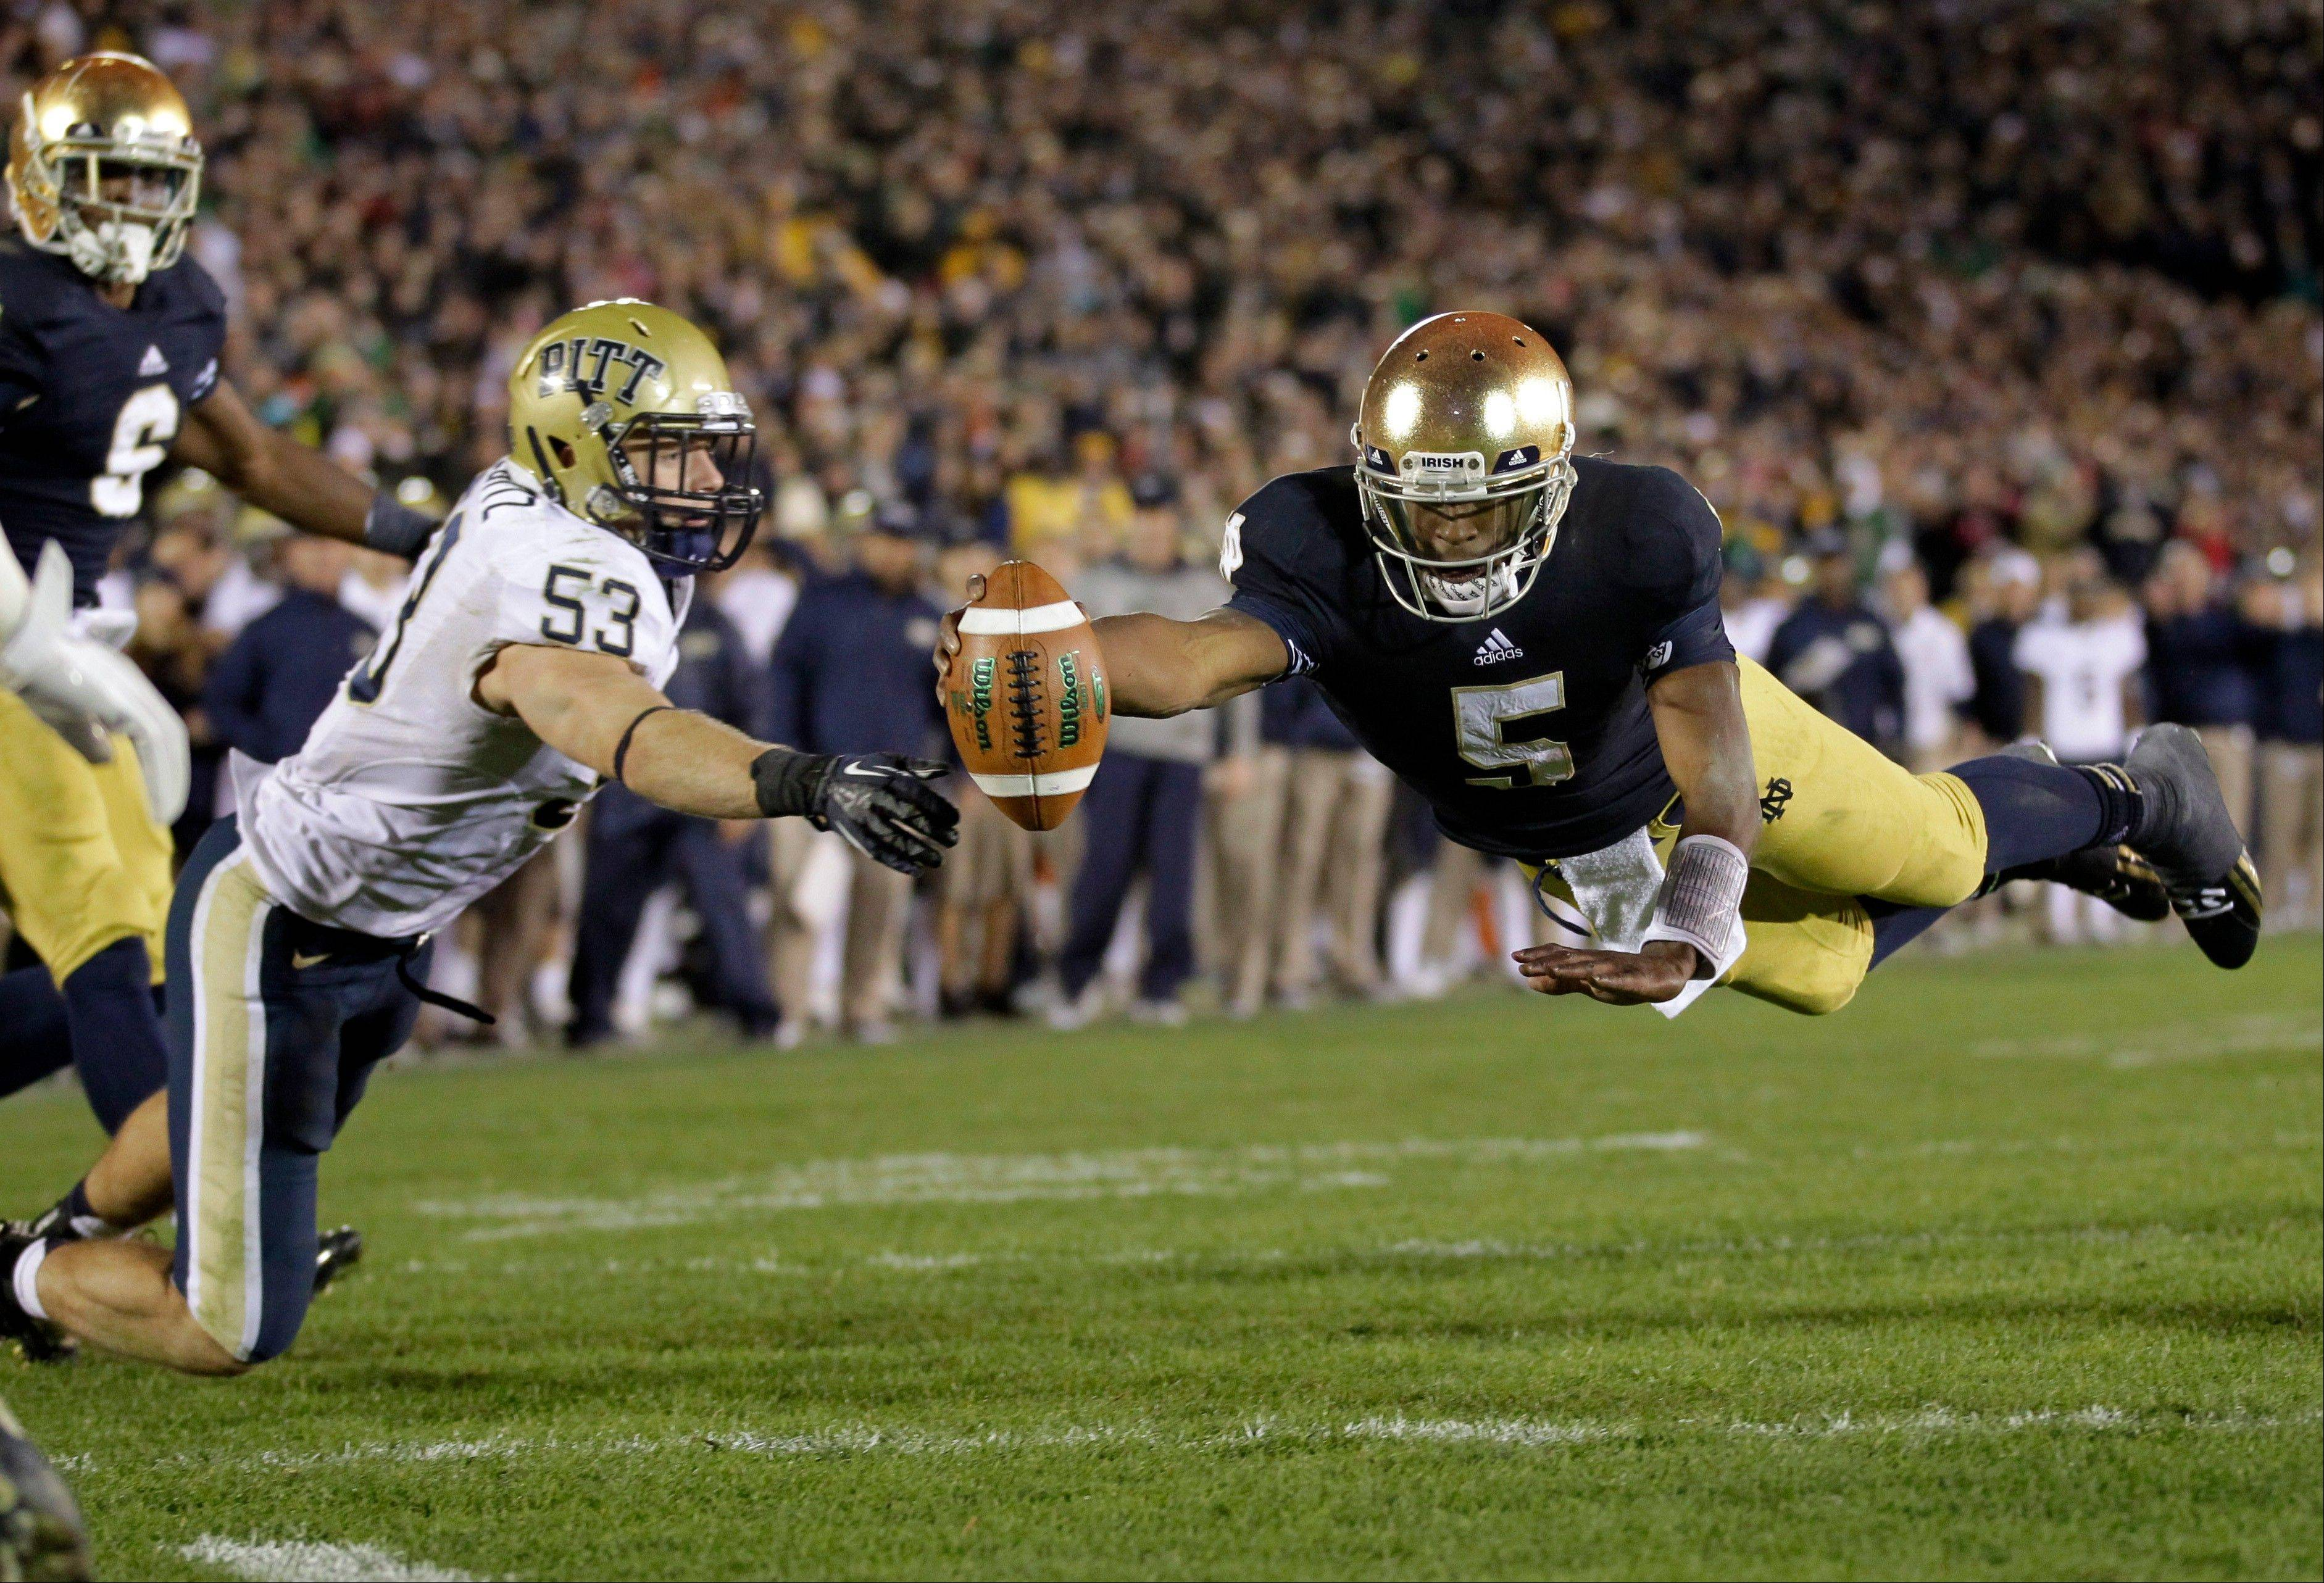 Notre Dame's Golson doing the little things for Irish